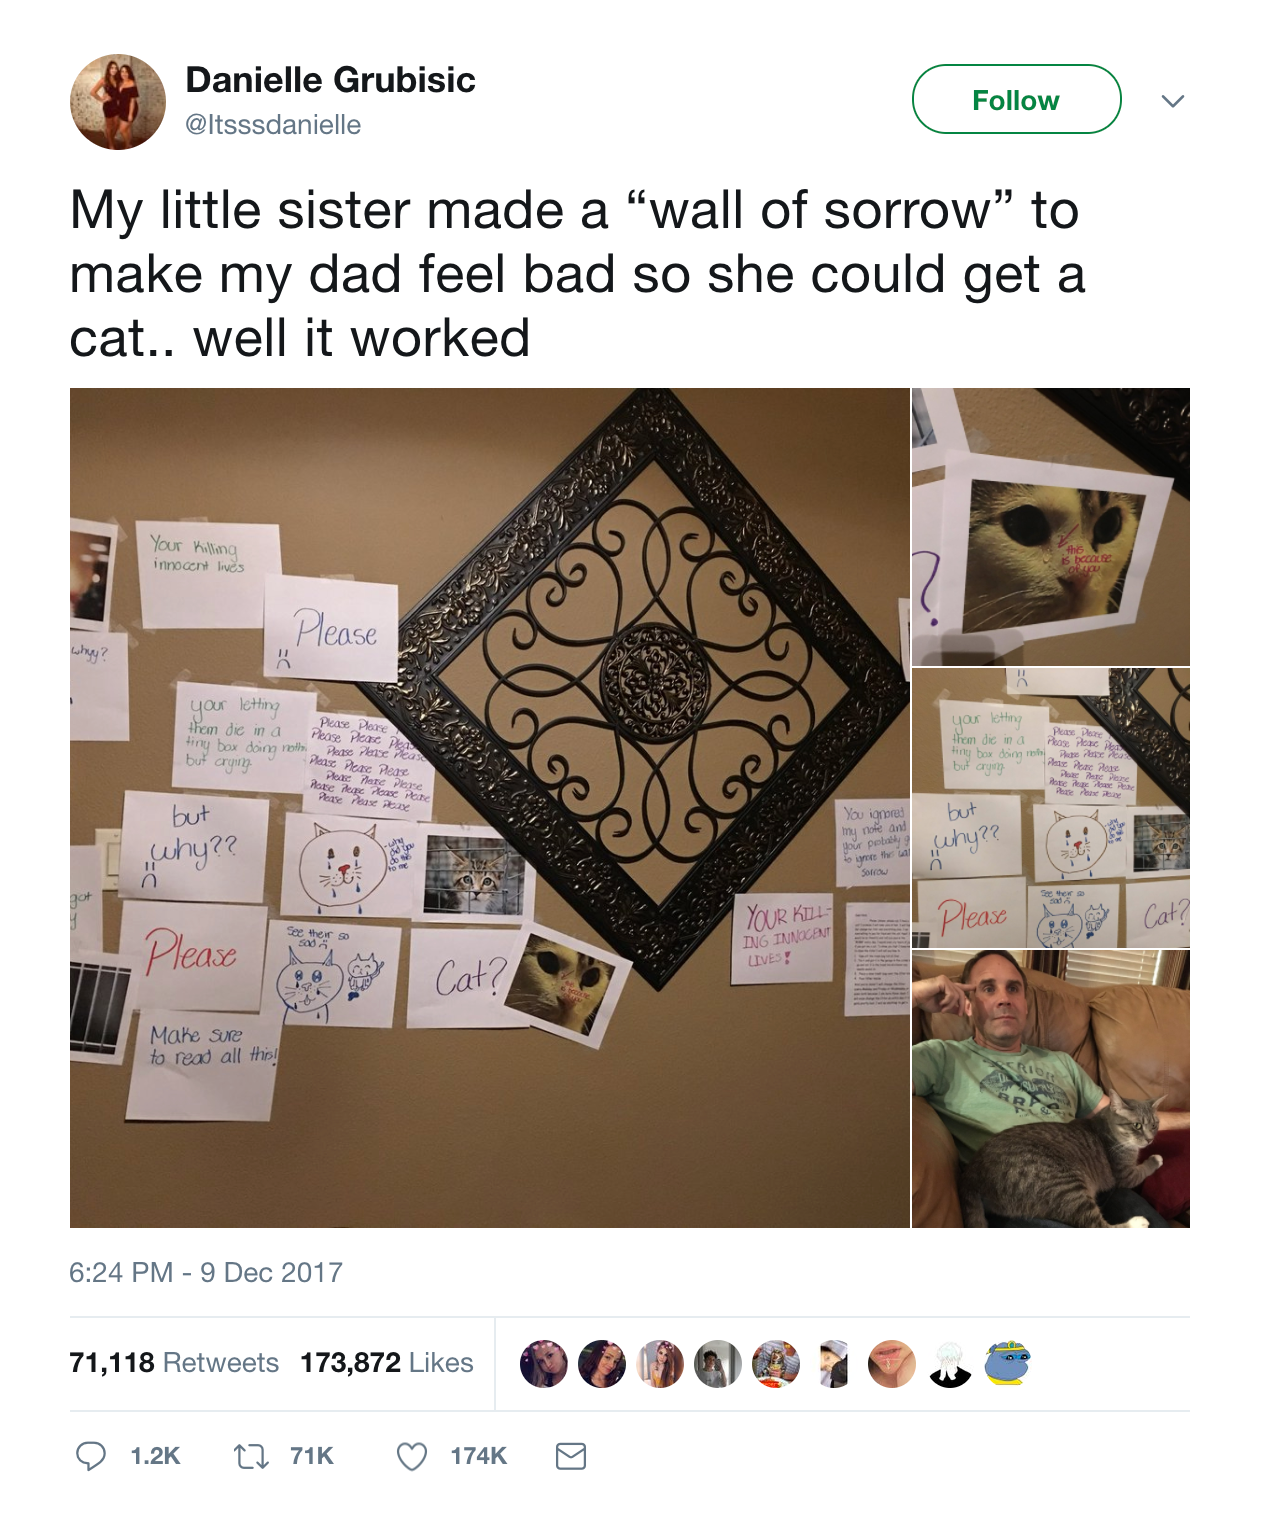 wall of sorrow guilt trip cat